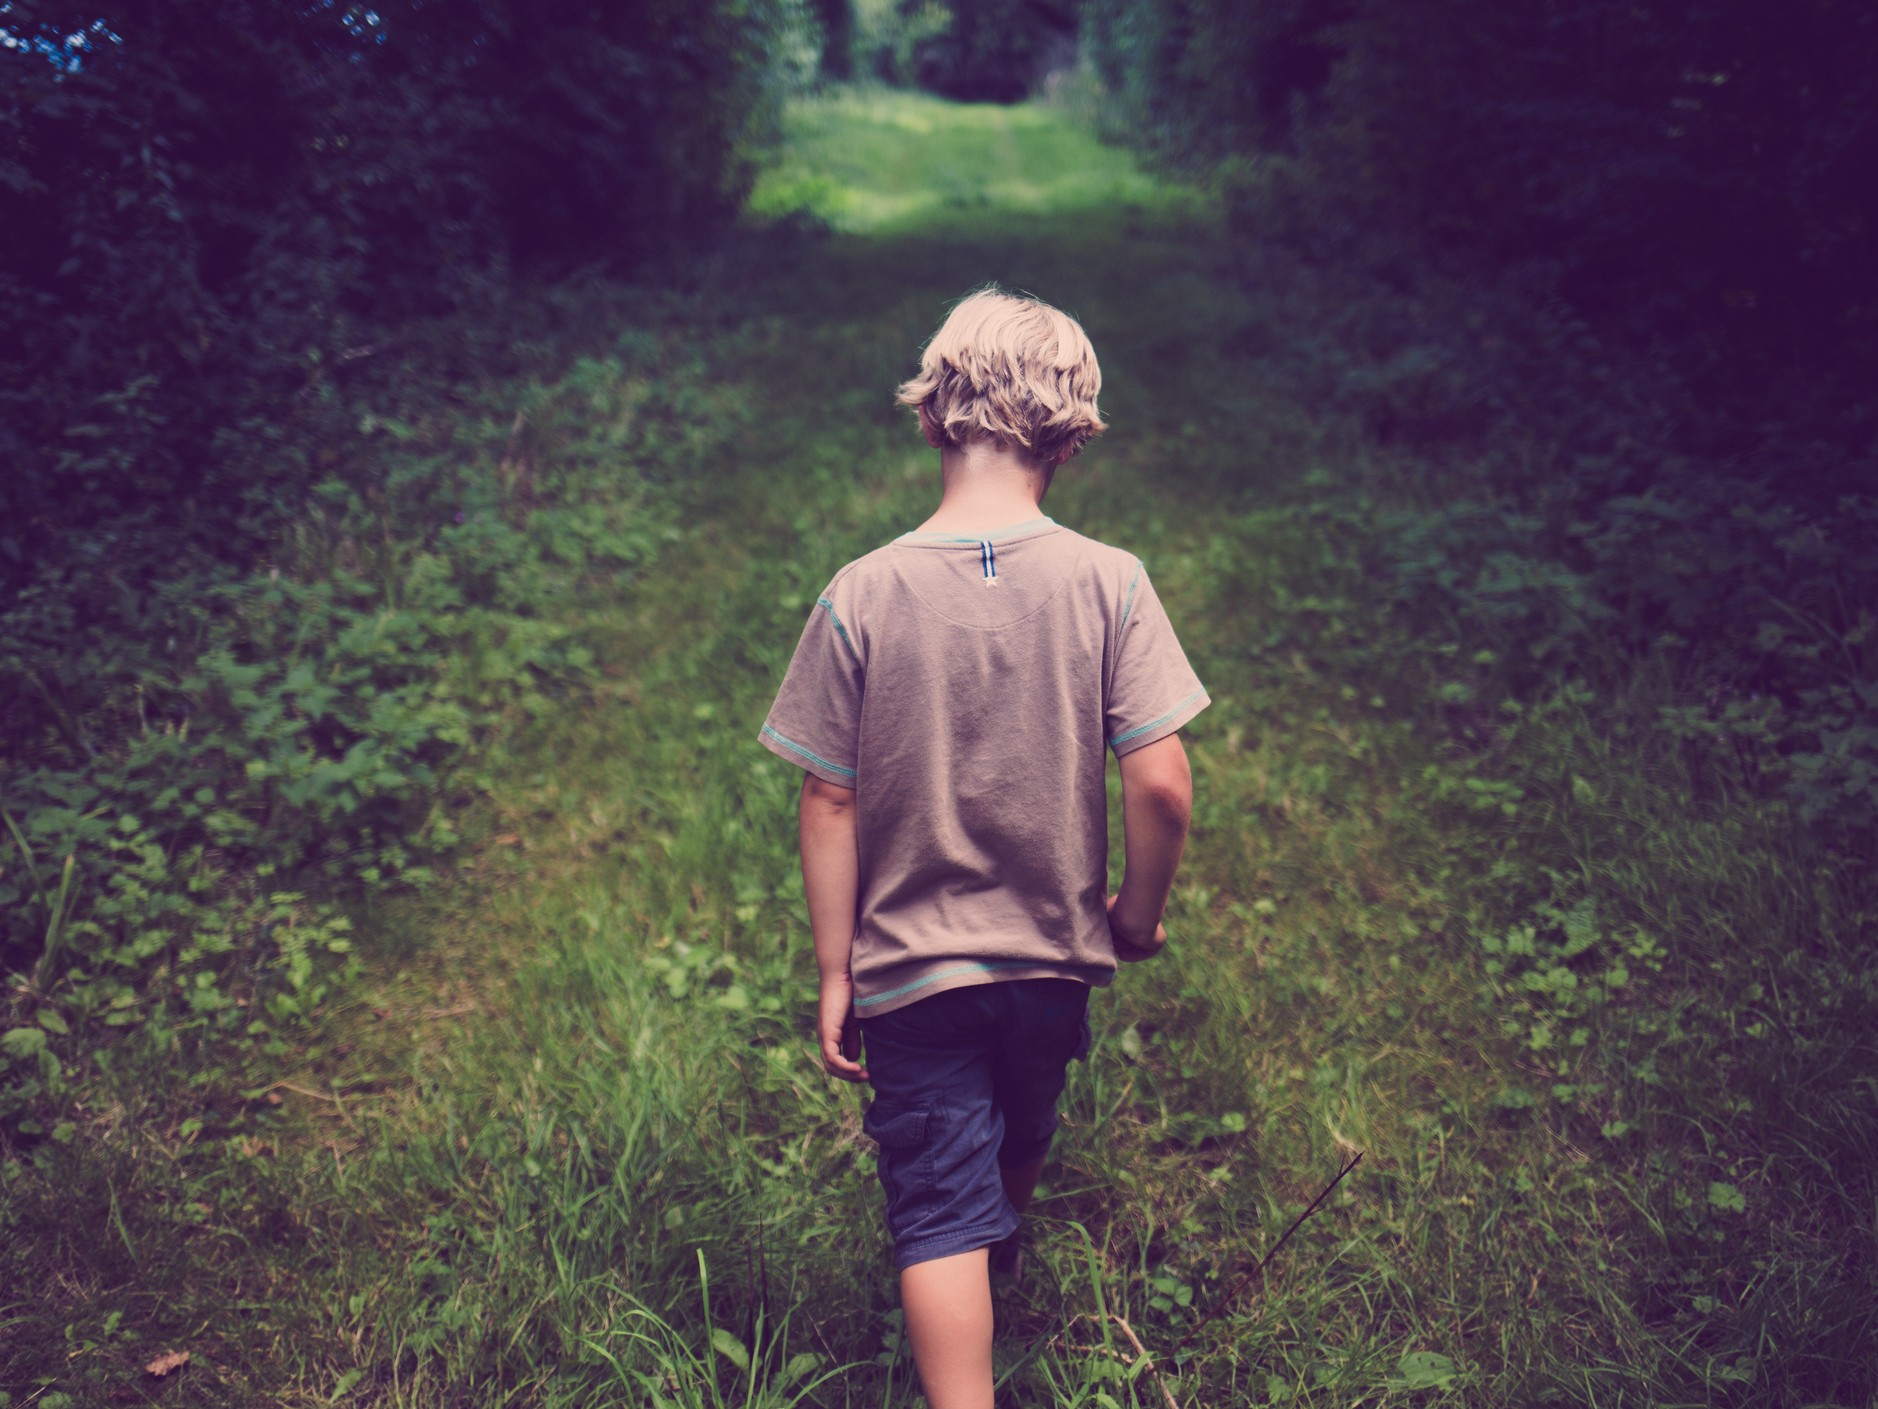 Why Do We Judge Parents For Putting Kids At Perceived — But Unreal — Risk?